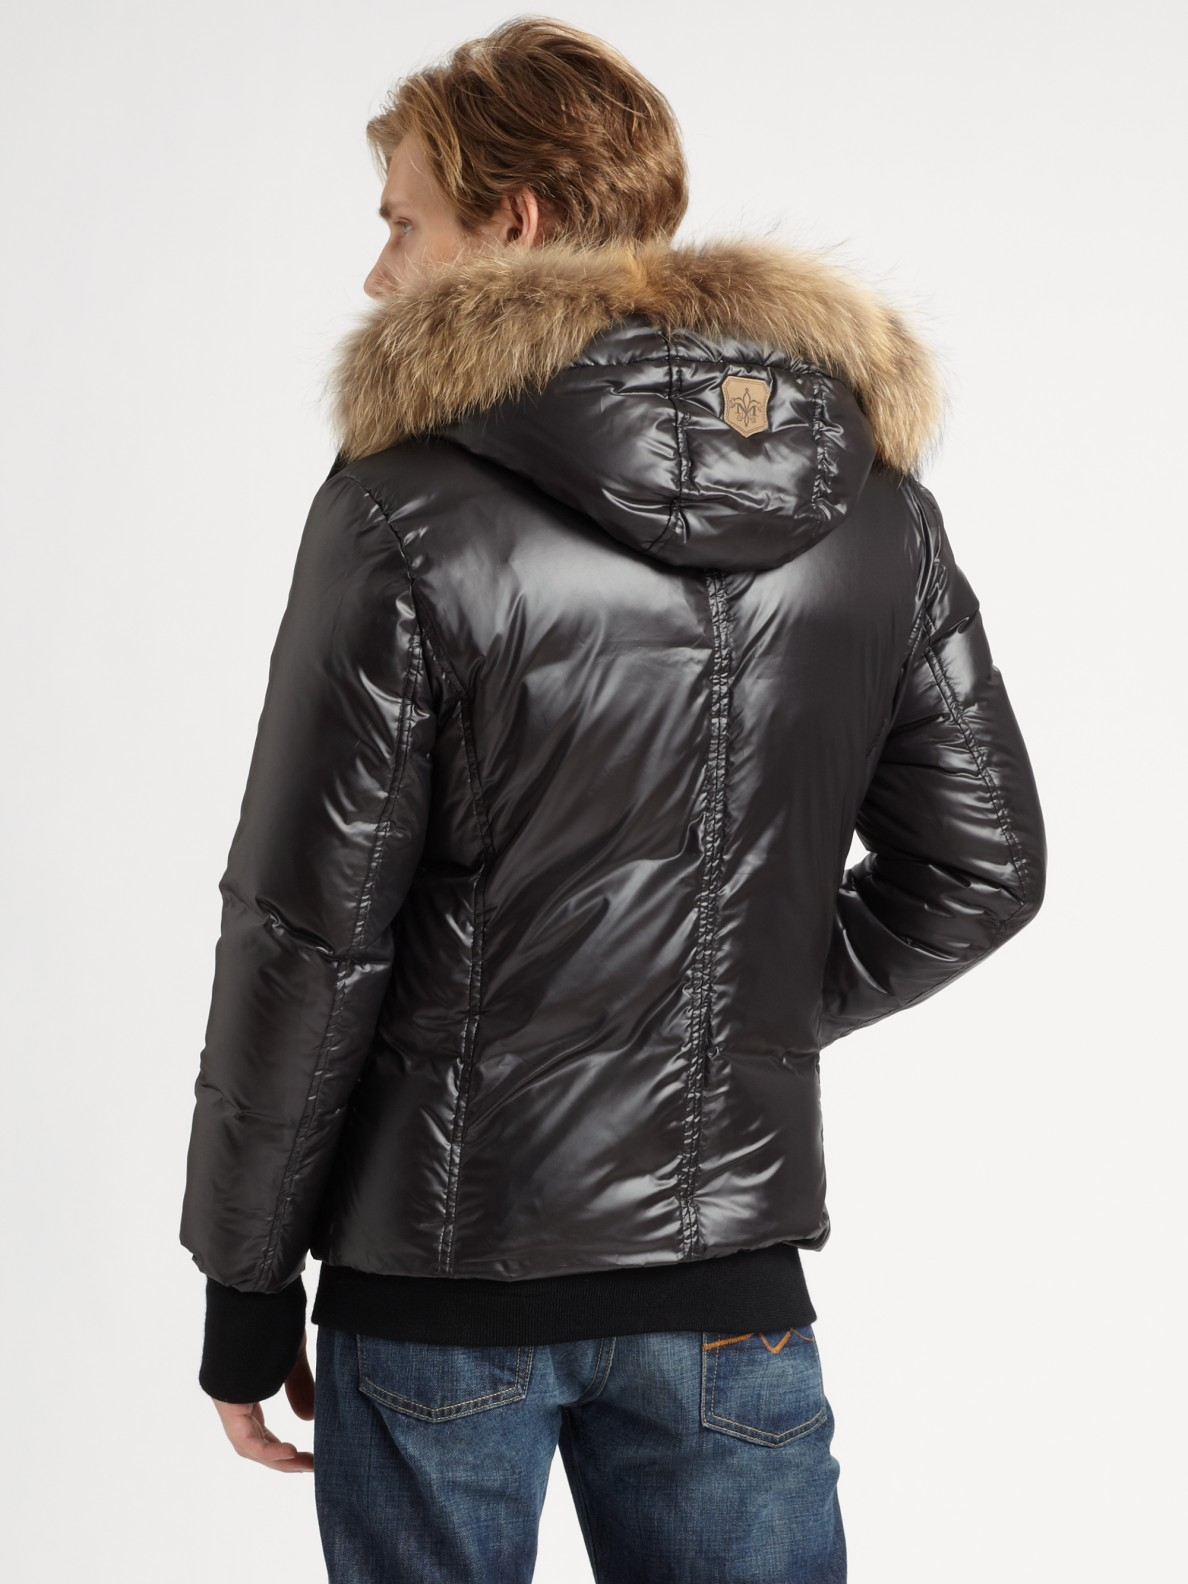 Mackage Fur-lined Down Jacket in Black for Men | Lyst